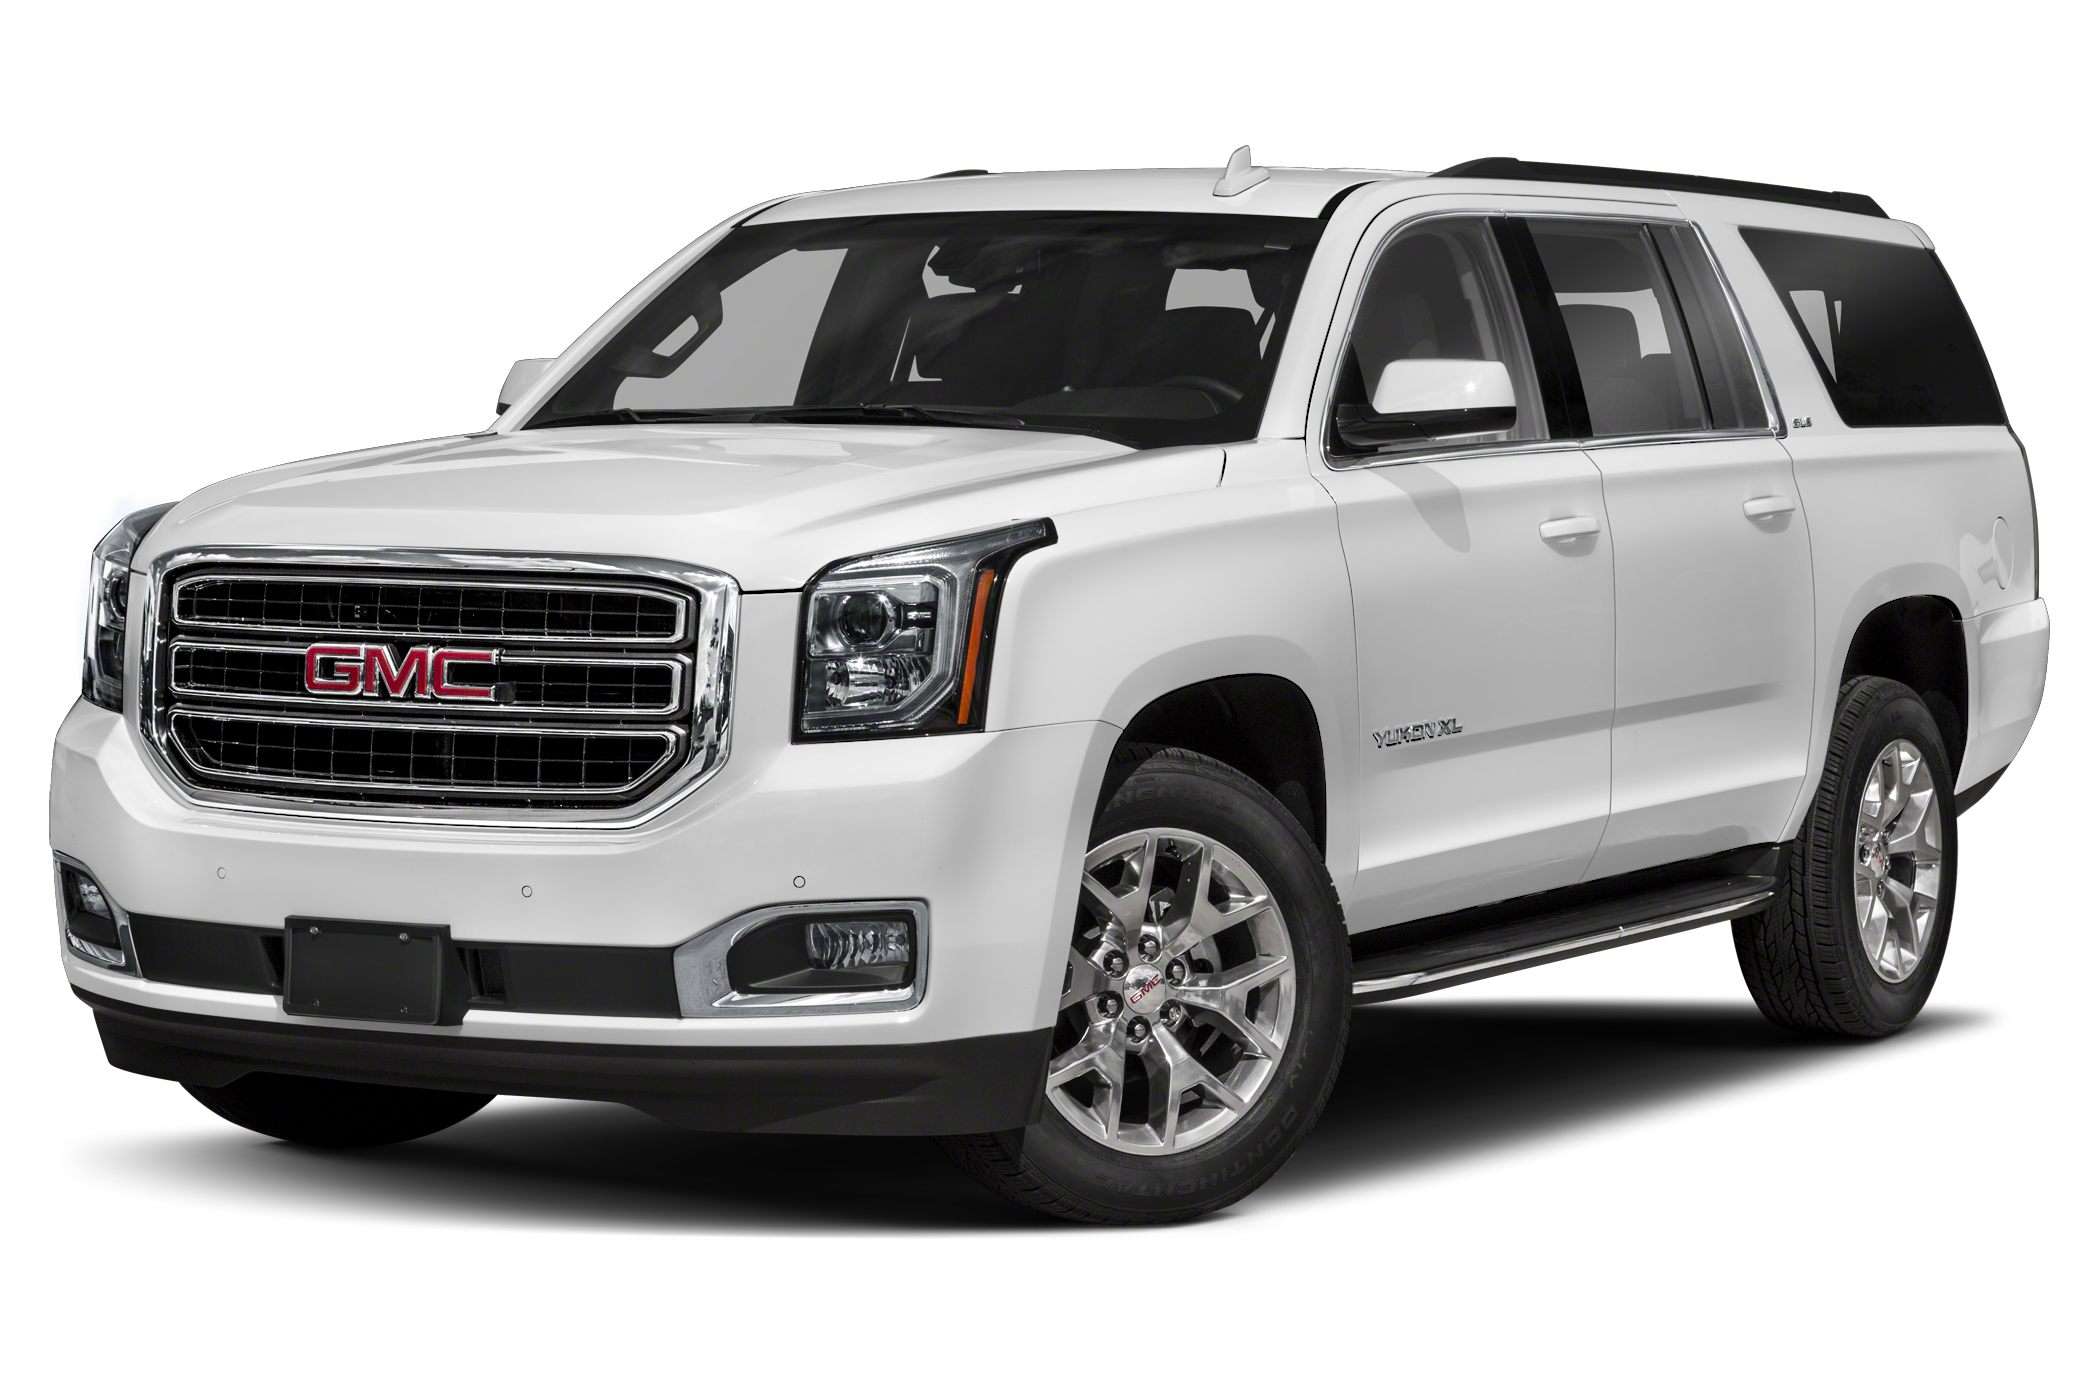 2020 Gmc Yukon Xl Sle 4x4 Specs And Prices